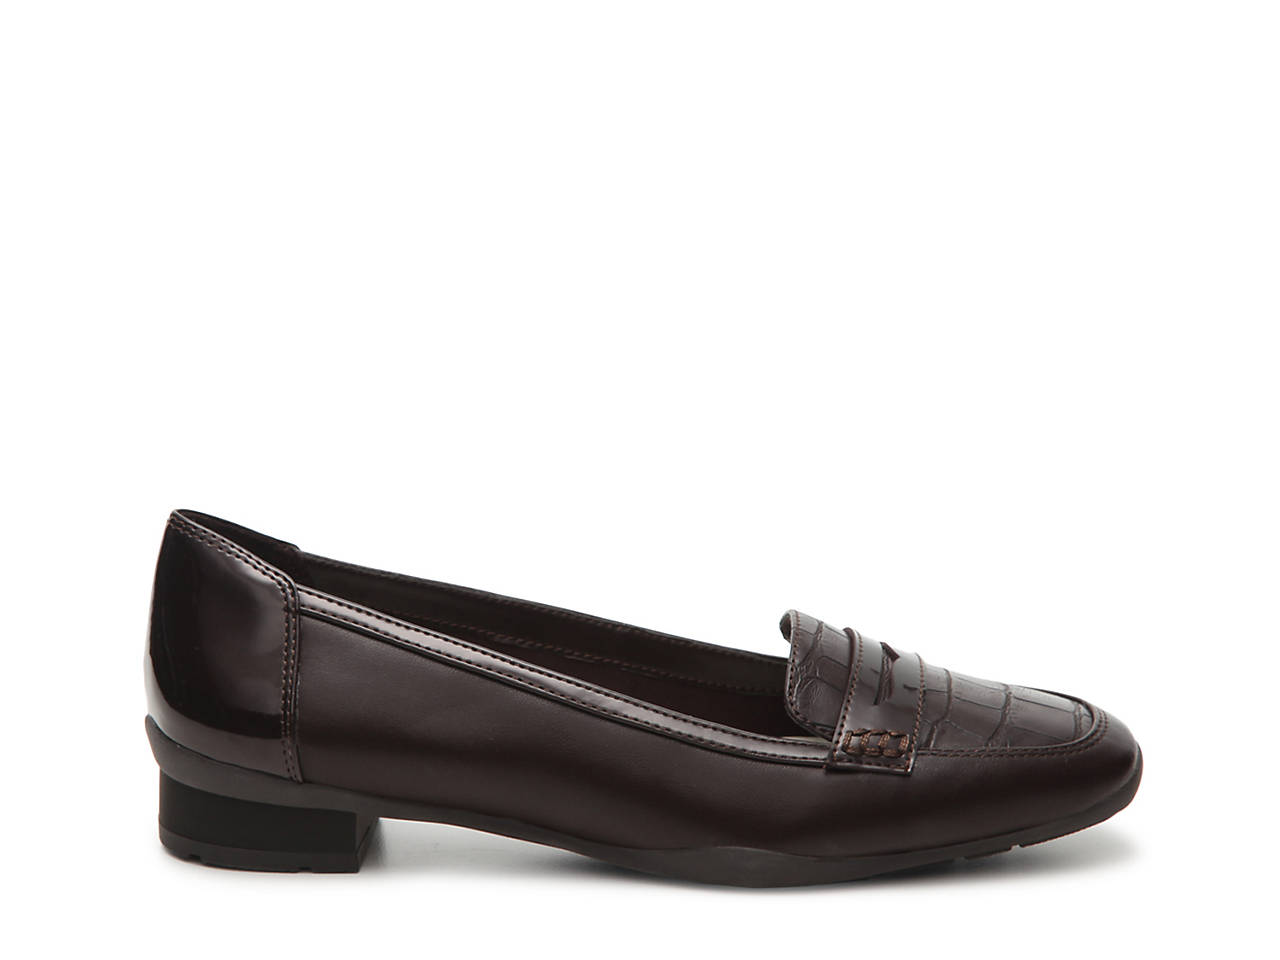 fdbfb30bd6a Anne Klein Romy Loafer Men s Shoes